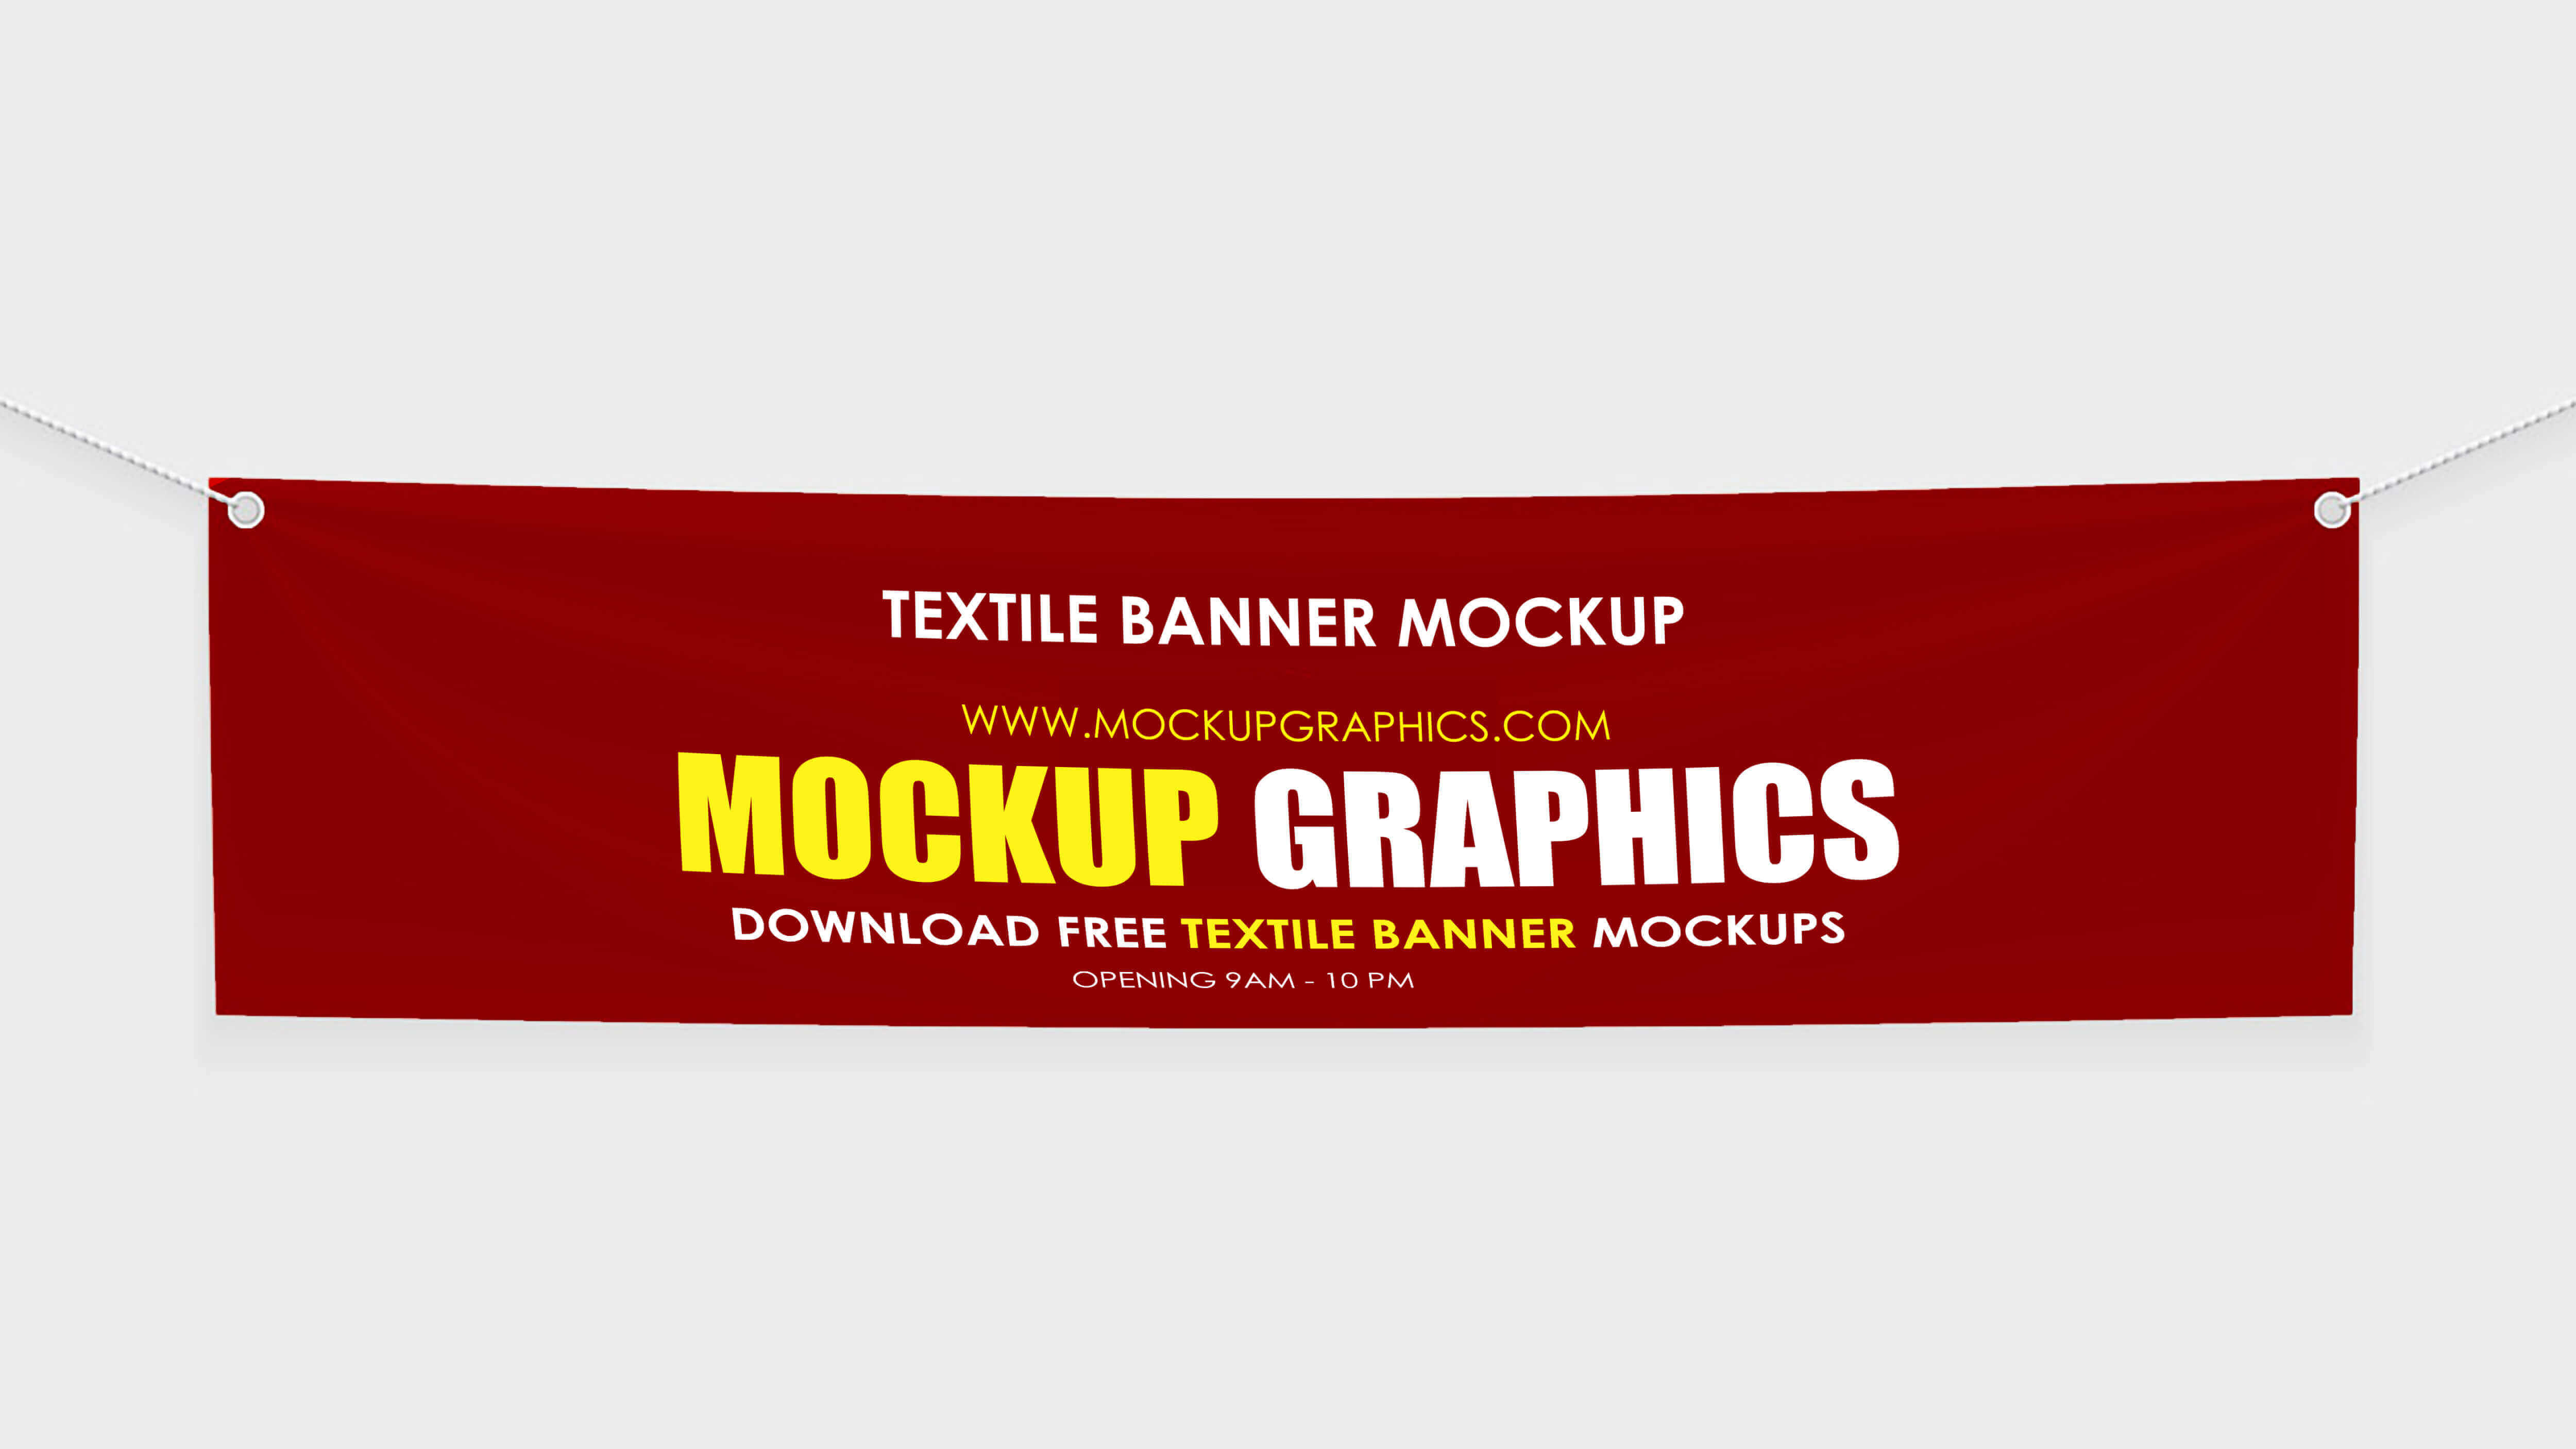 free psd textile banner mockup - www.mockupgraphics.com